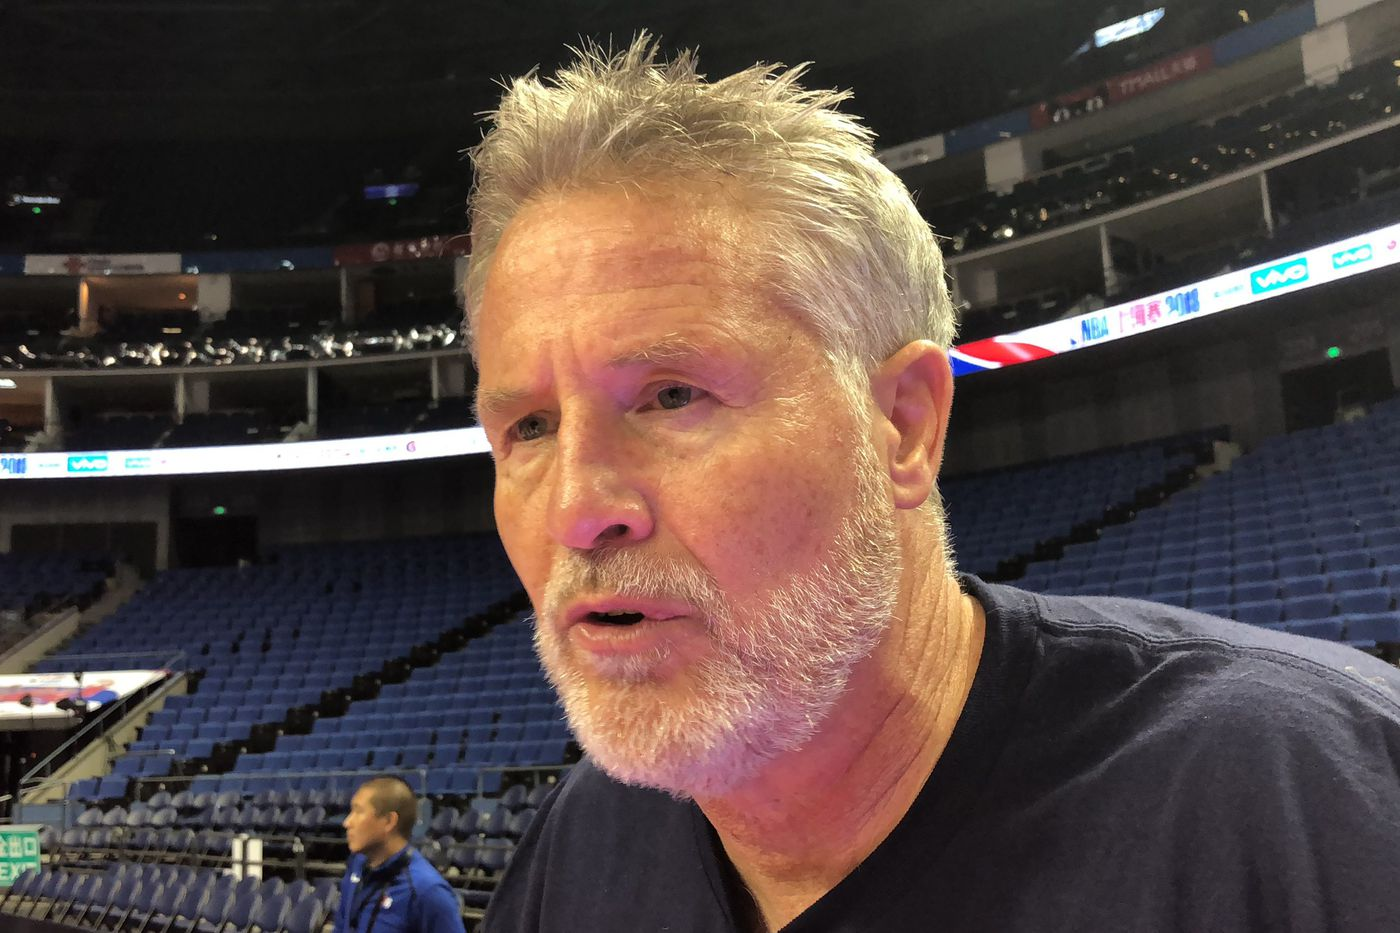 Sixers look to overcome distractions, make most of China trip